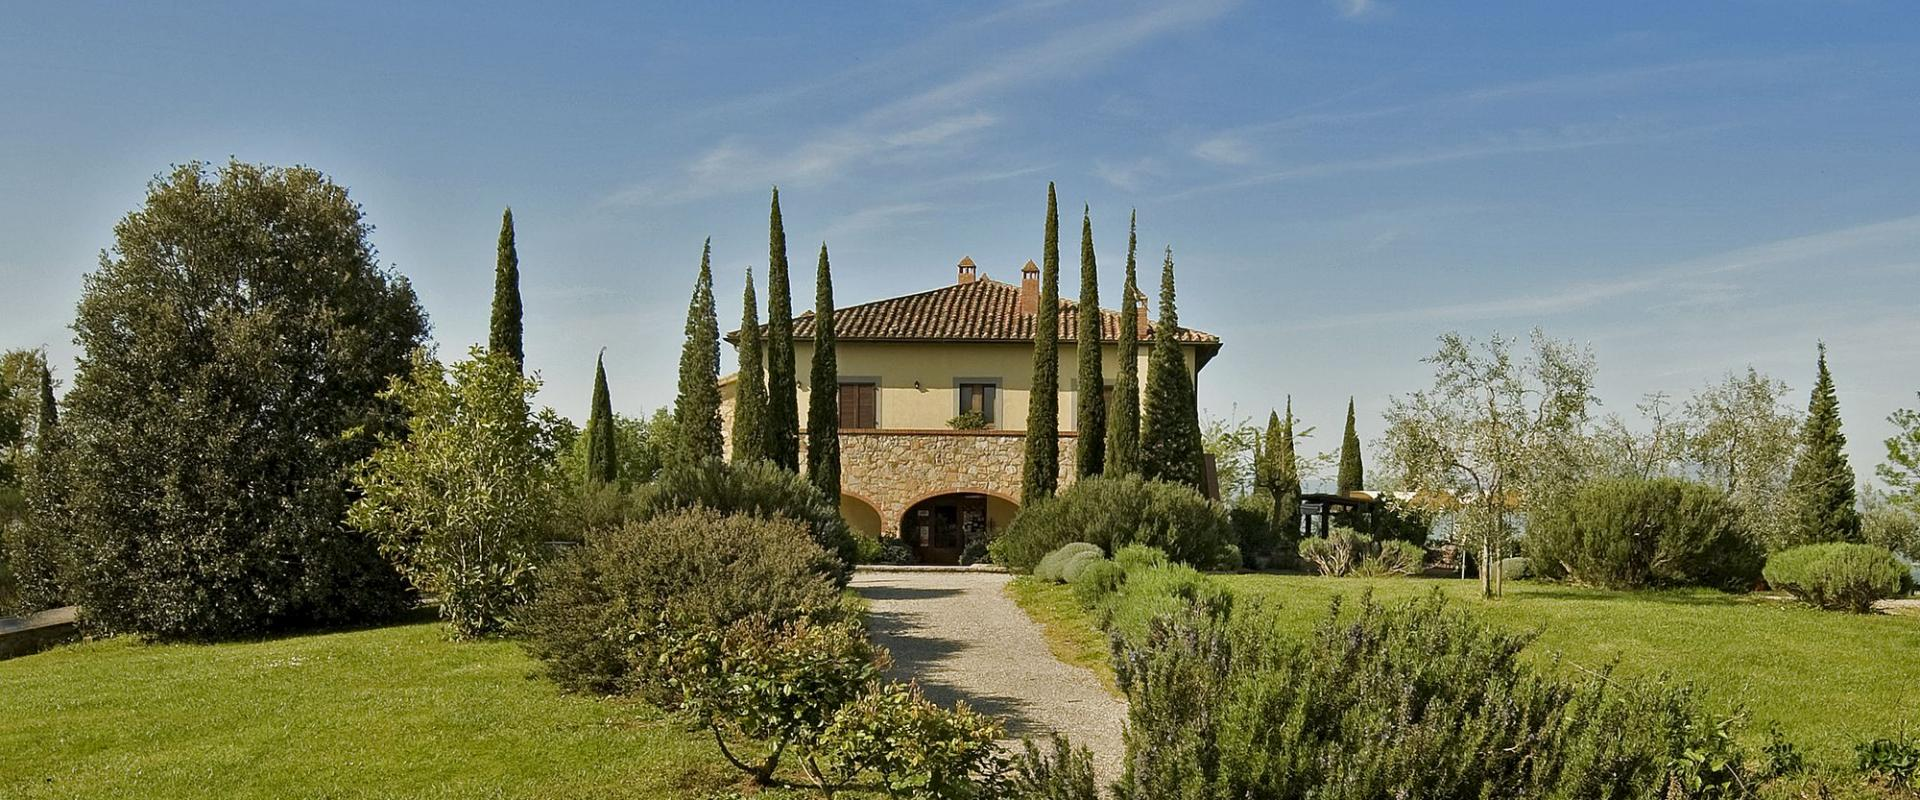 The Il Poggio Farmhouse and Resort in Siena